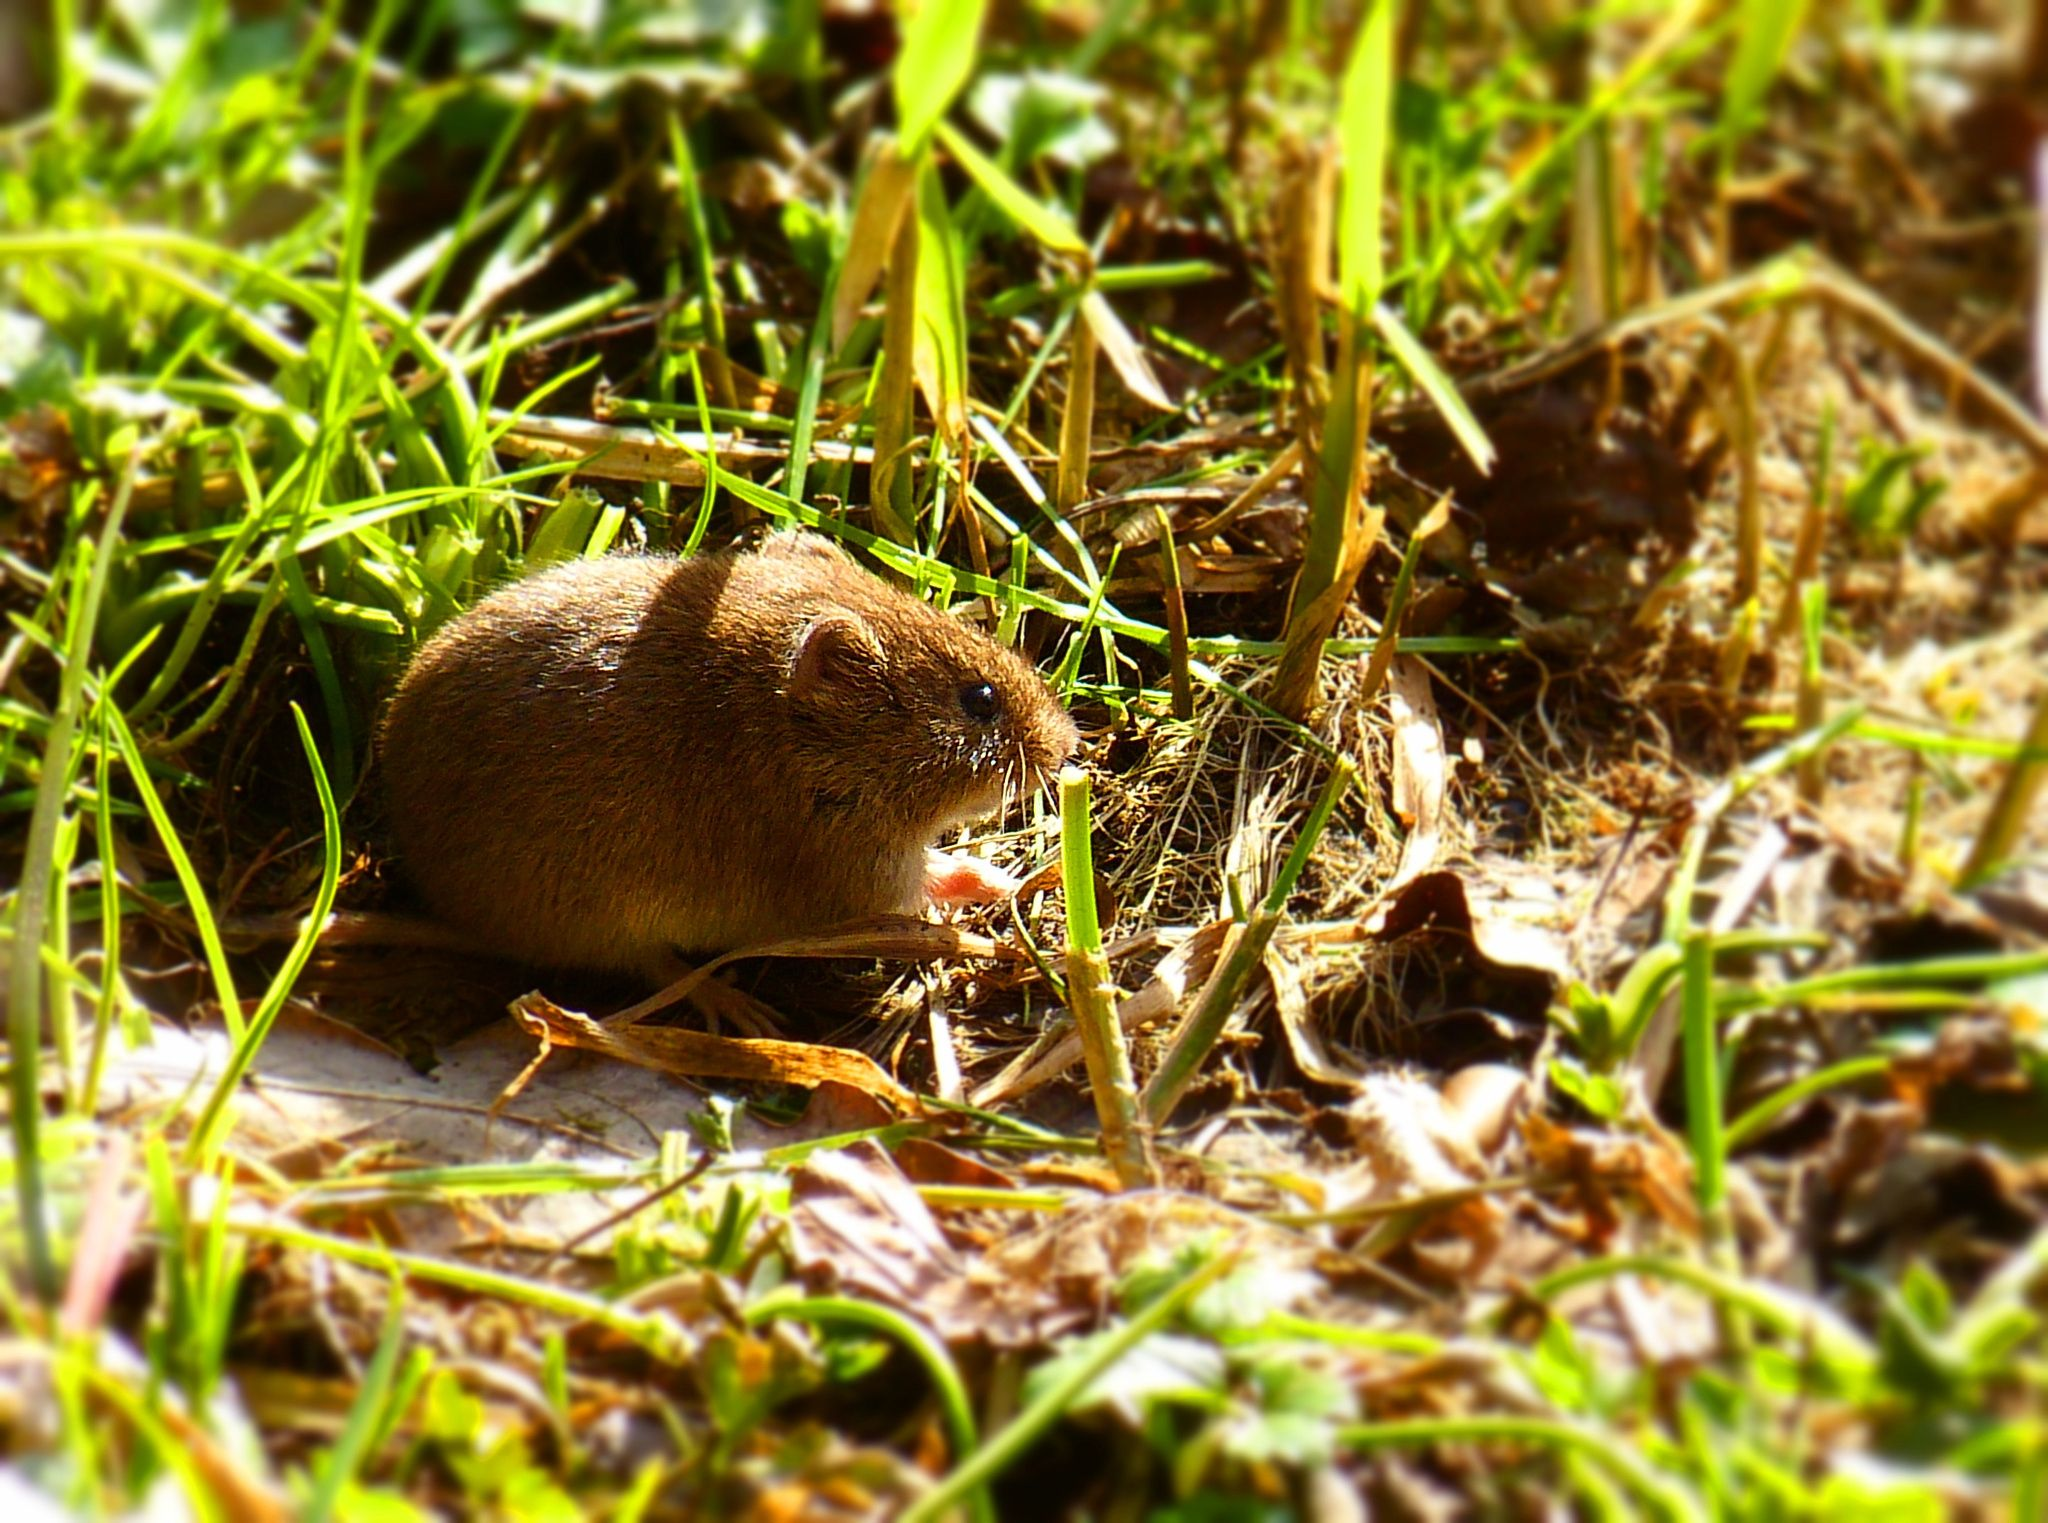 Suddenly this little mouse appeared out of a hole in the field  ...